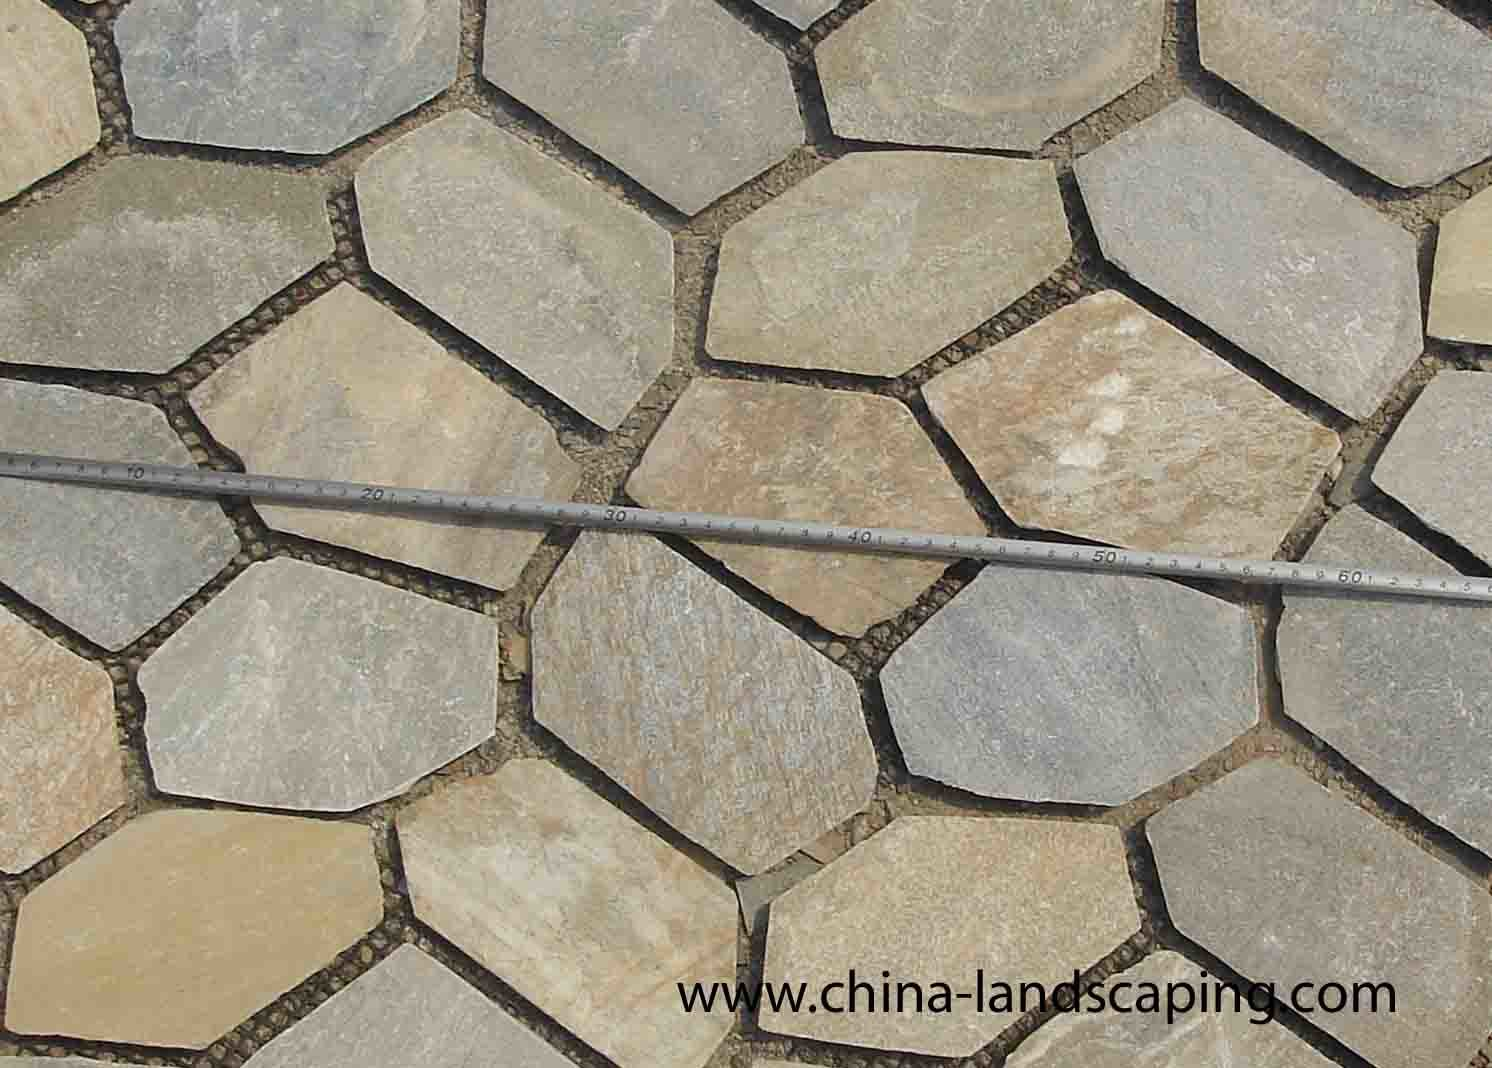 pattern paving group picture image by tag